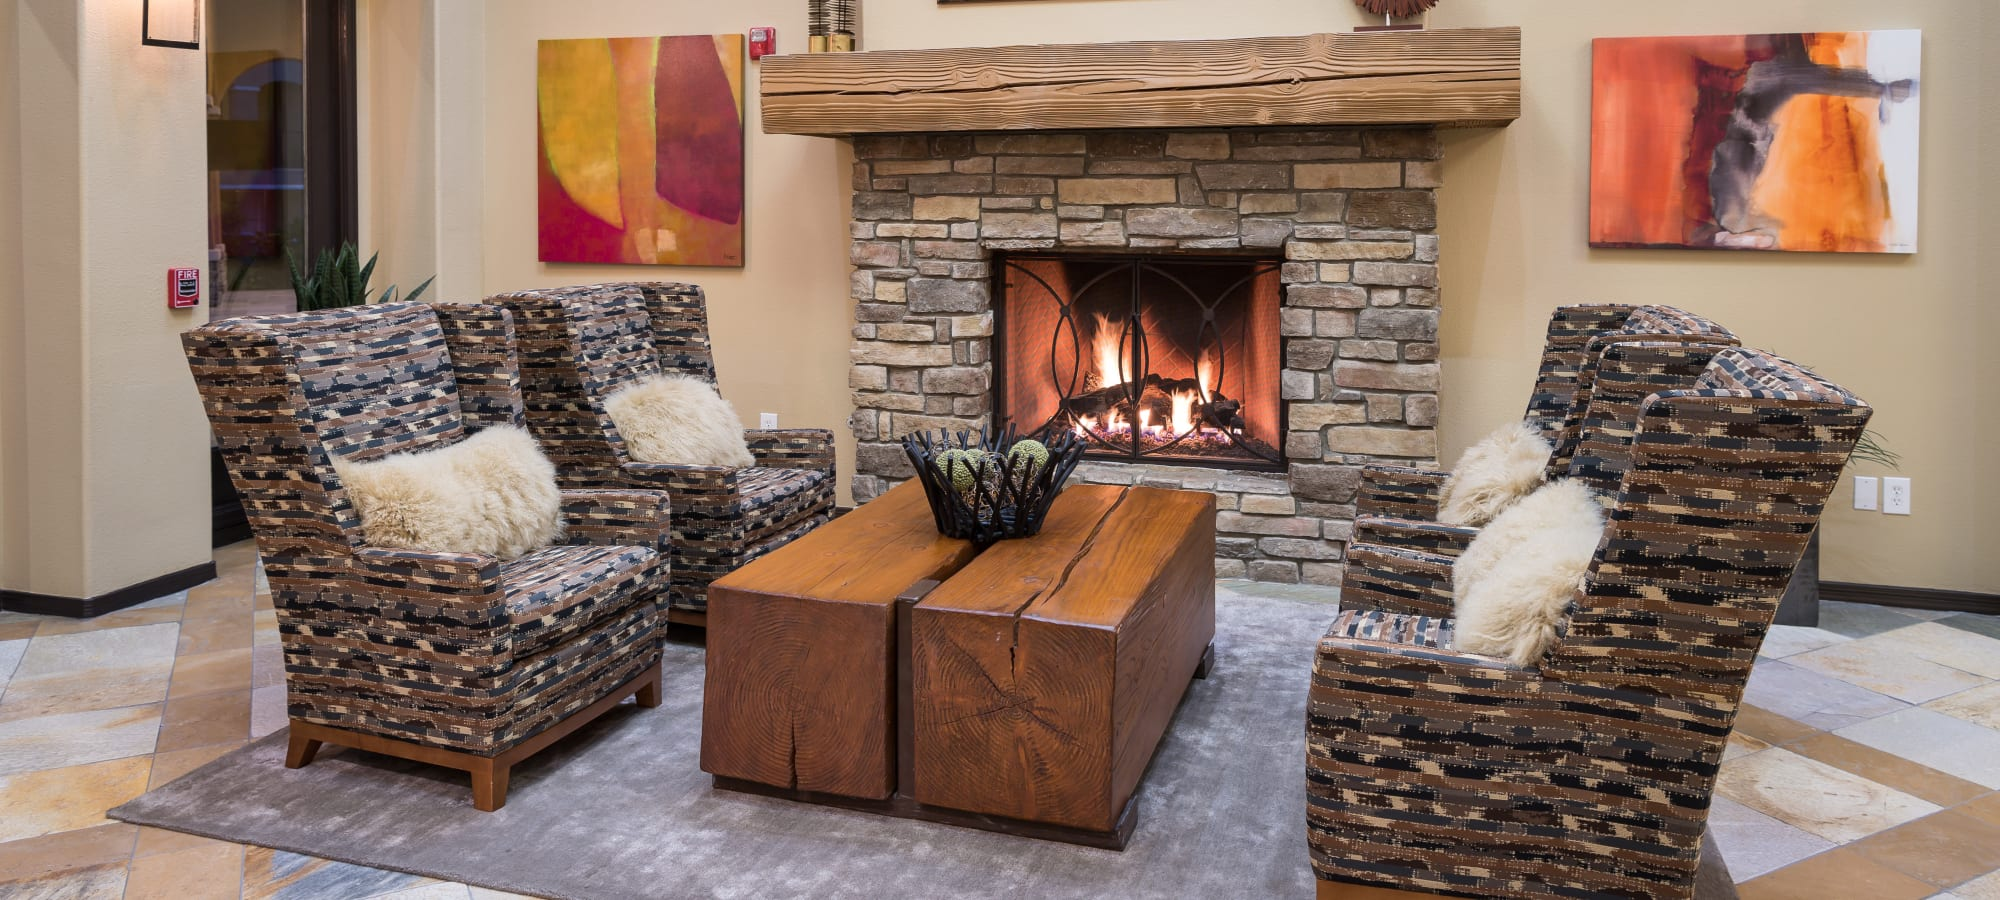 Stone fireplace with comfortable seating nearby in the resident clubhouse at Stone Oaks in Chandler, Arizona